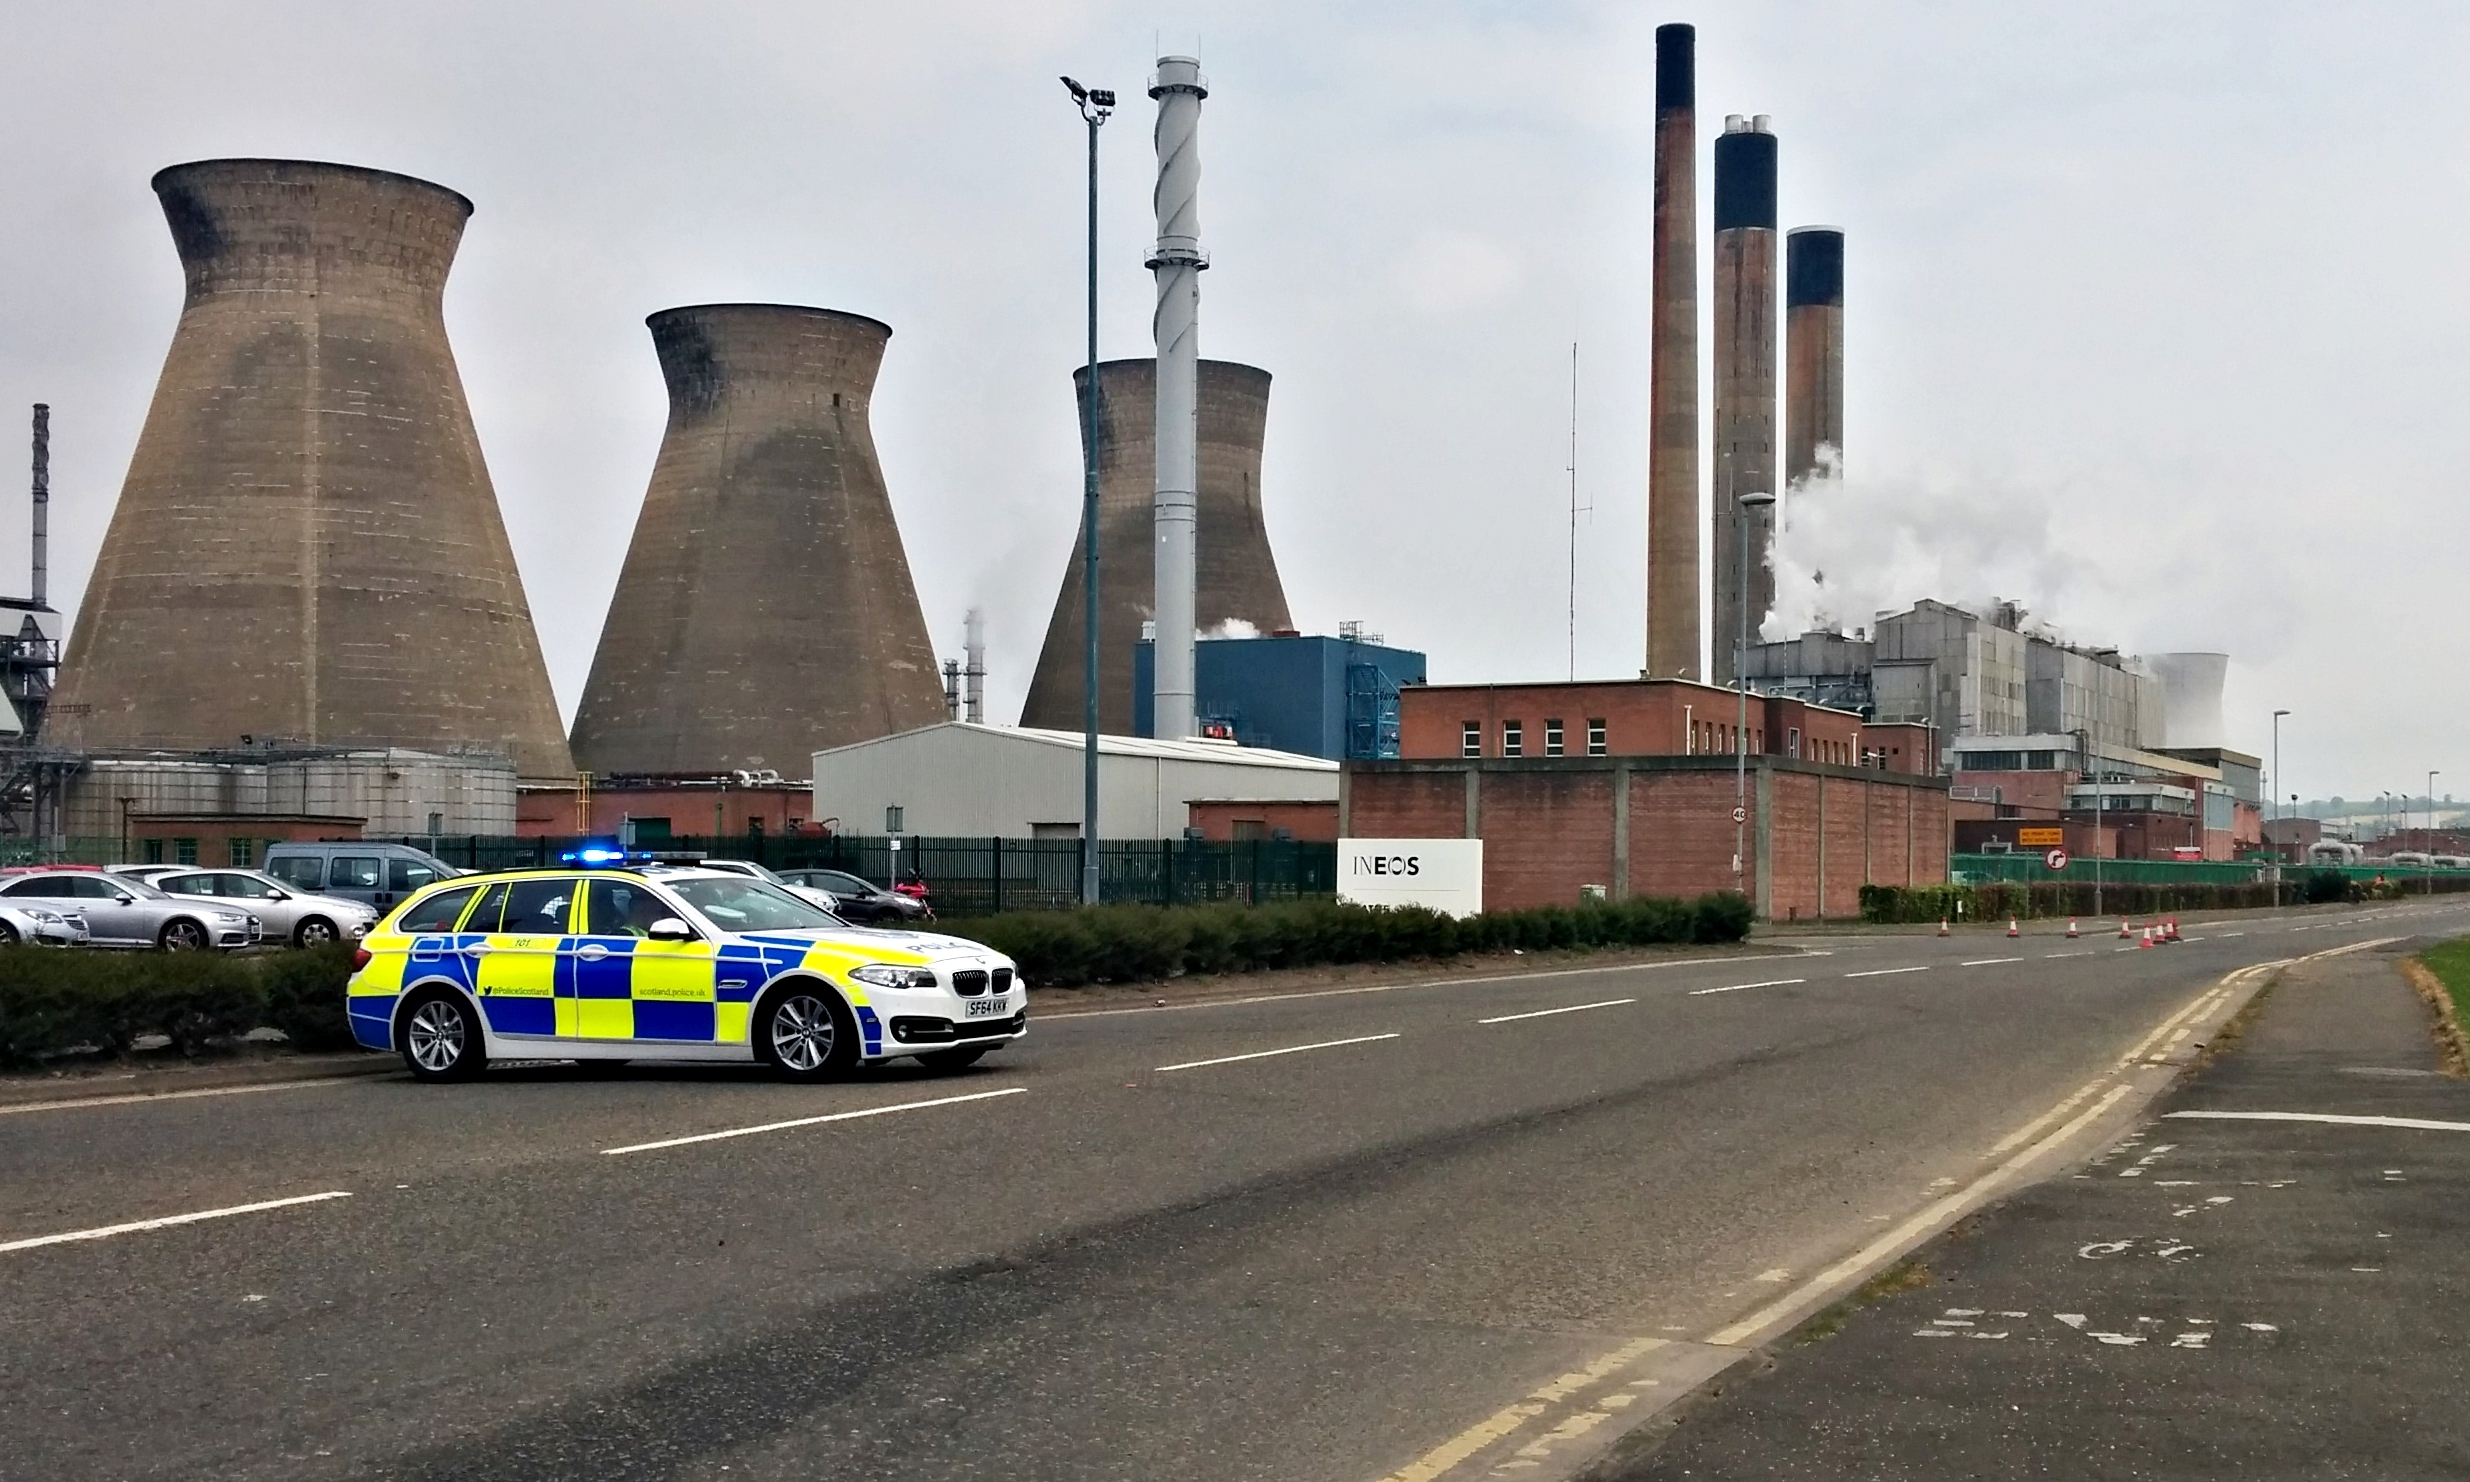 Police blocking access to the Ineos plant at Grangemouth.